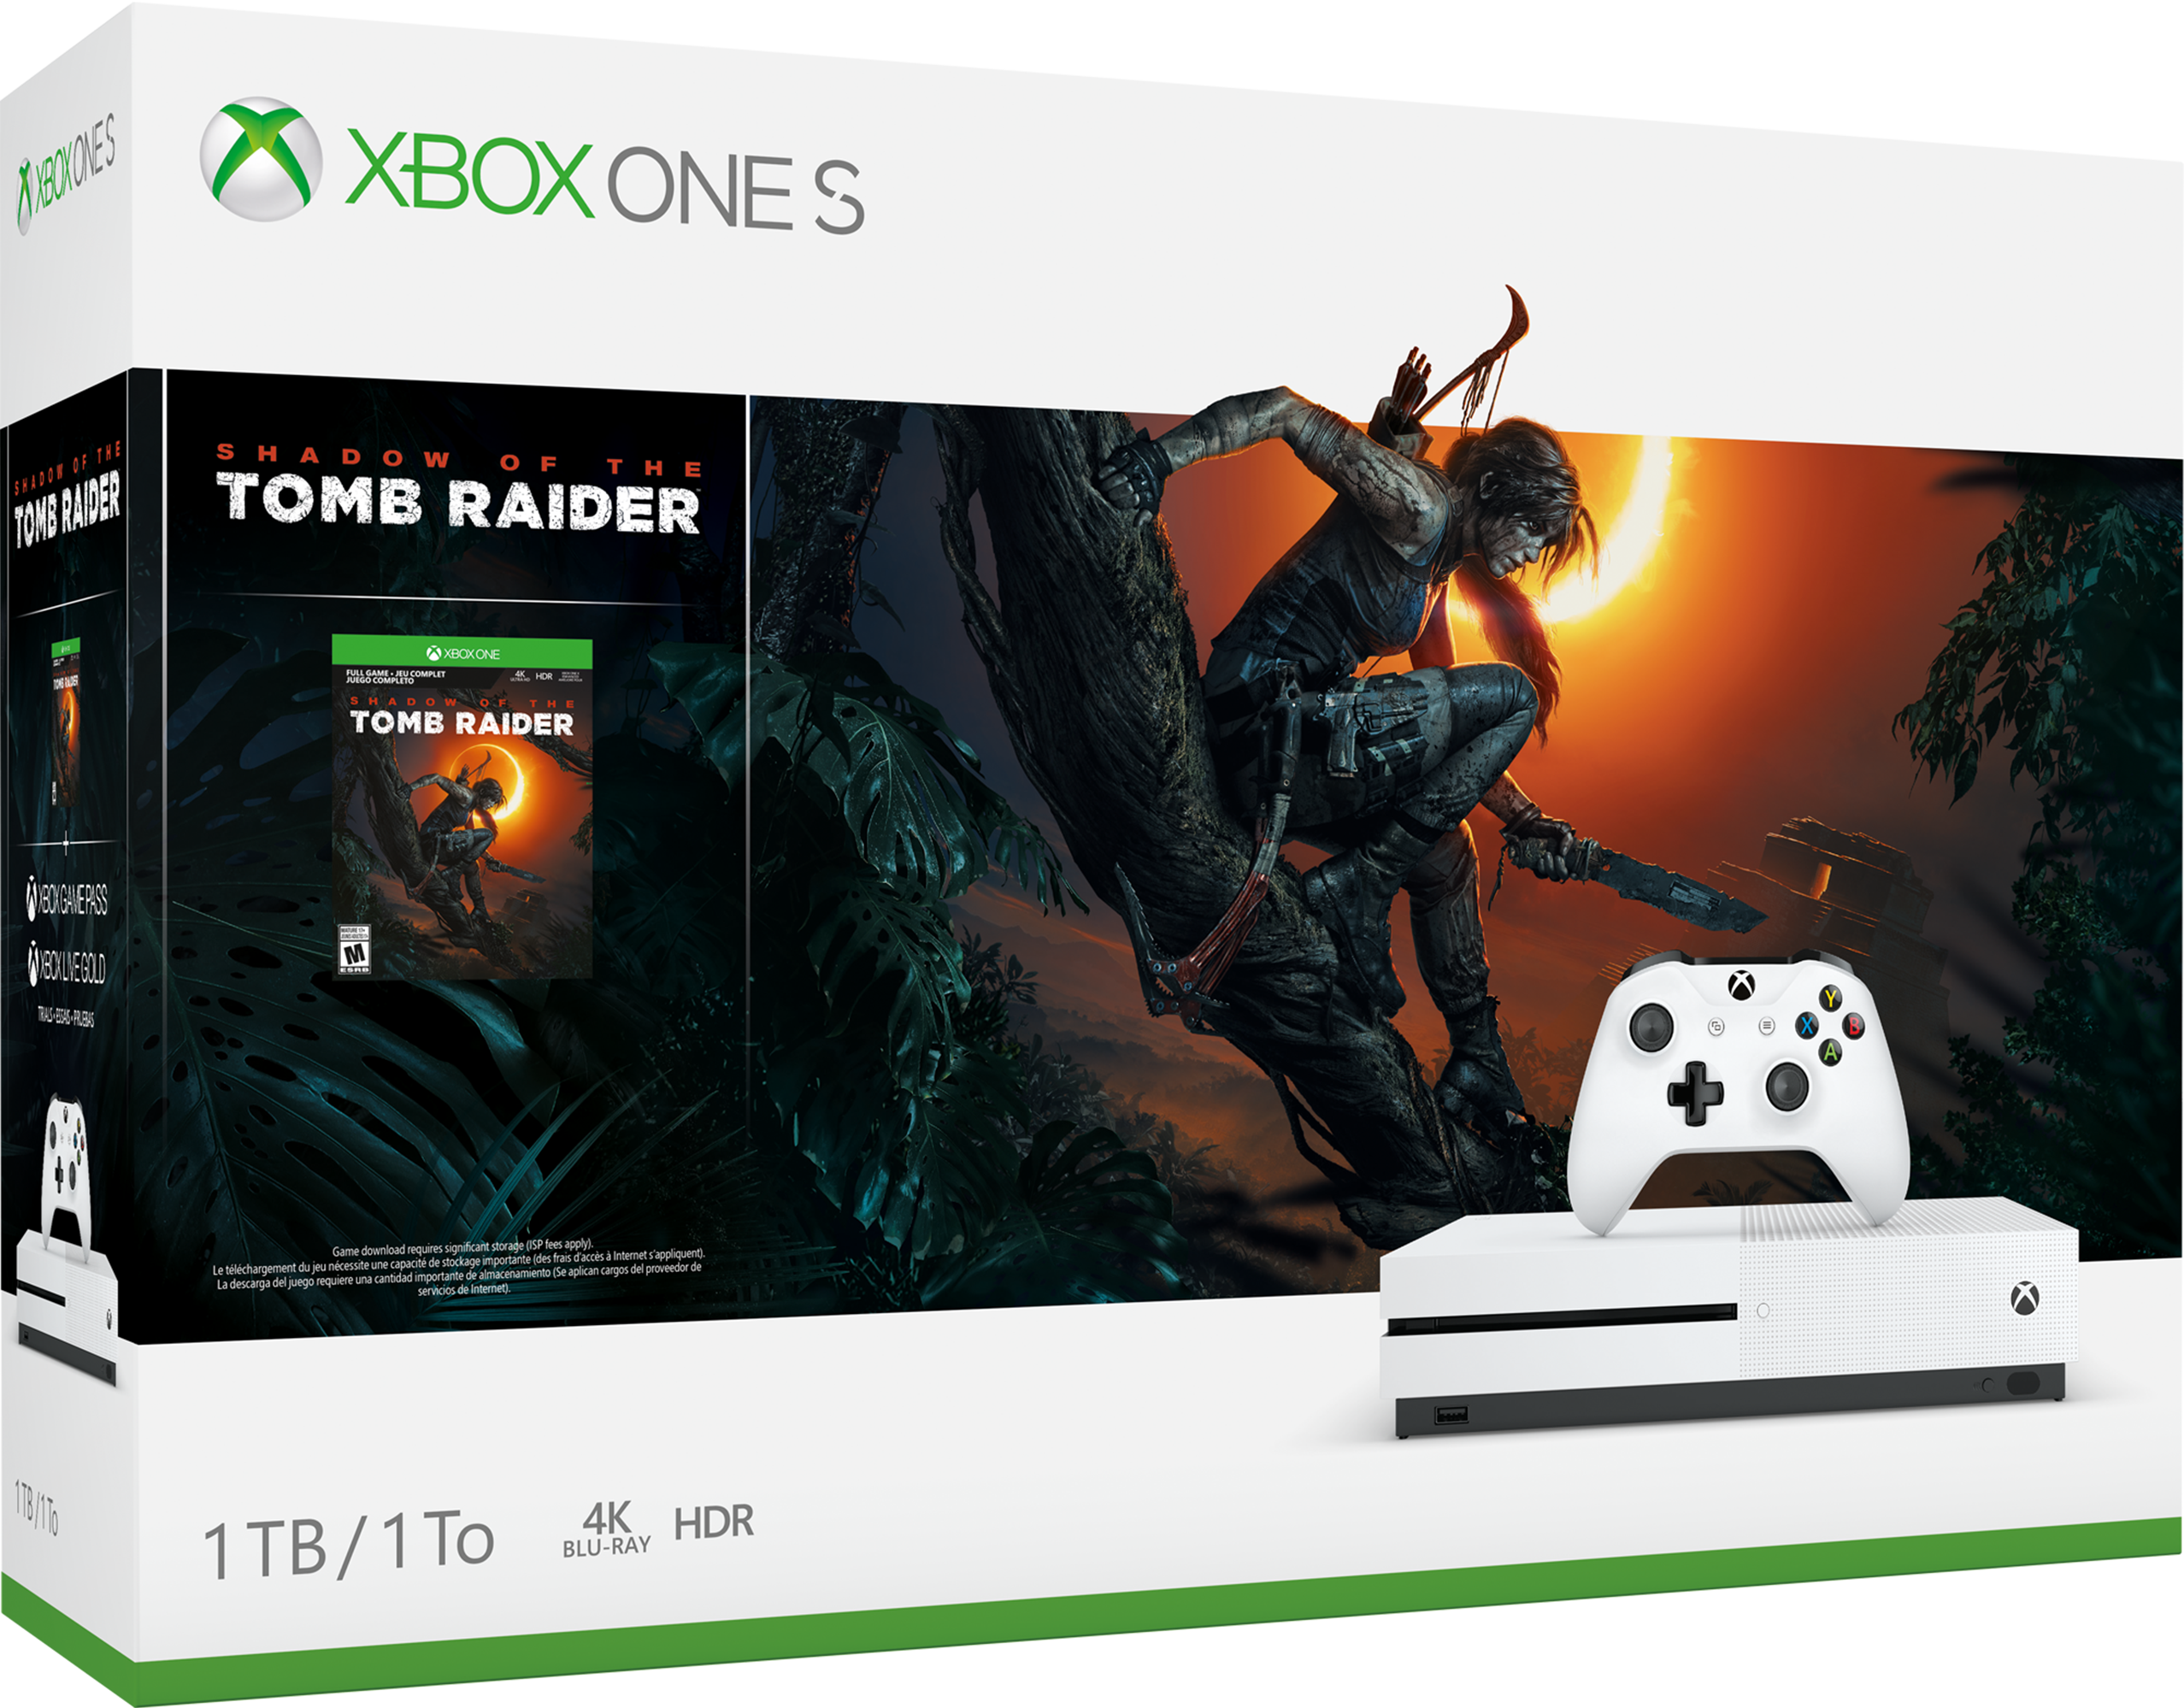 Pack de Xbox One S y Shadow of the Tomb Raider (1 TB) – Xbox One